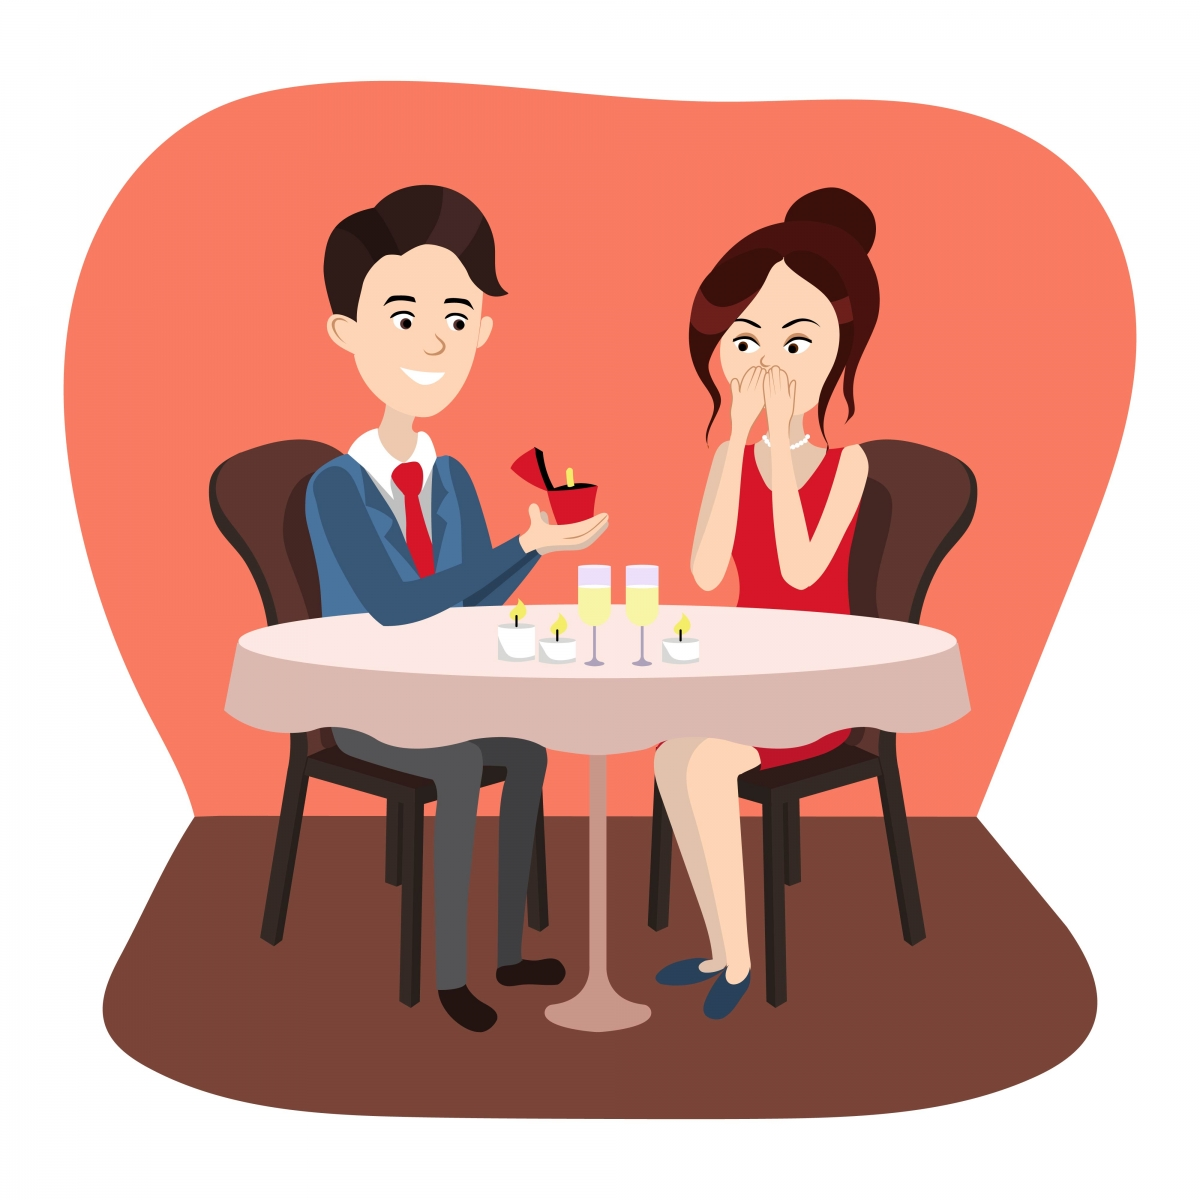 A cartoon of a man's marriage proposal to a woman at a fancy dinner